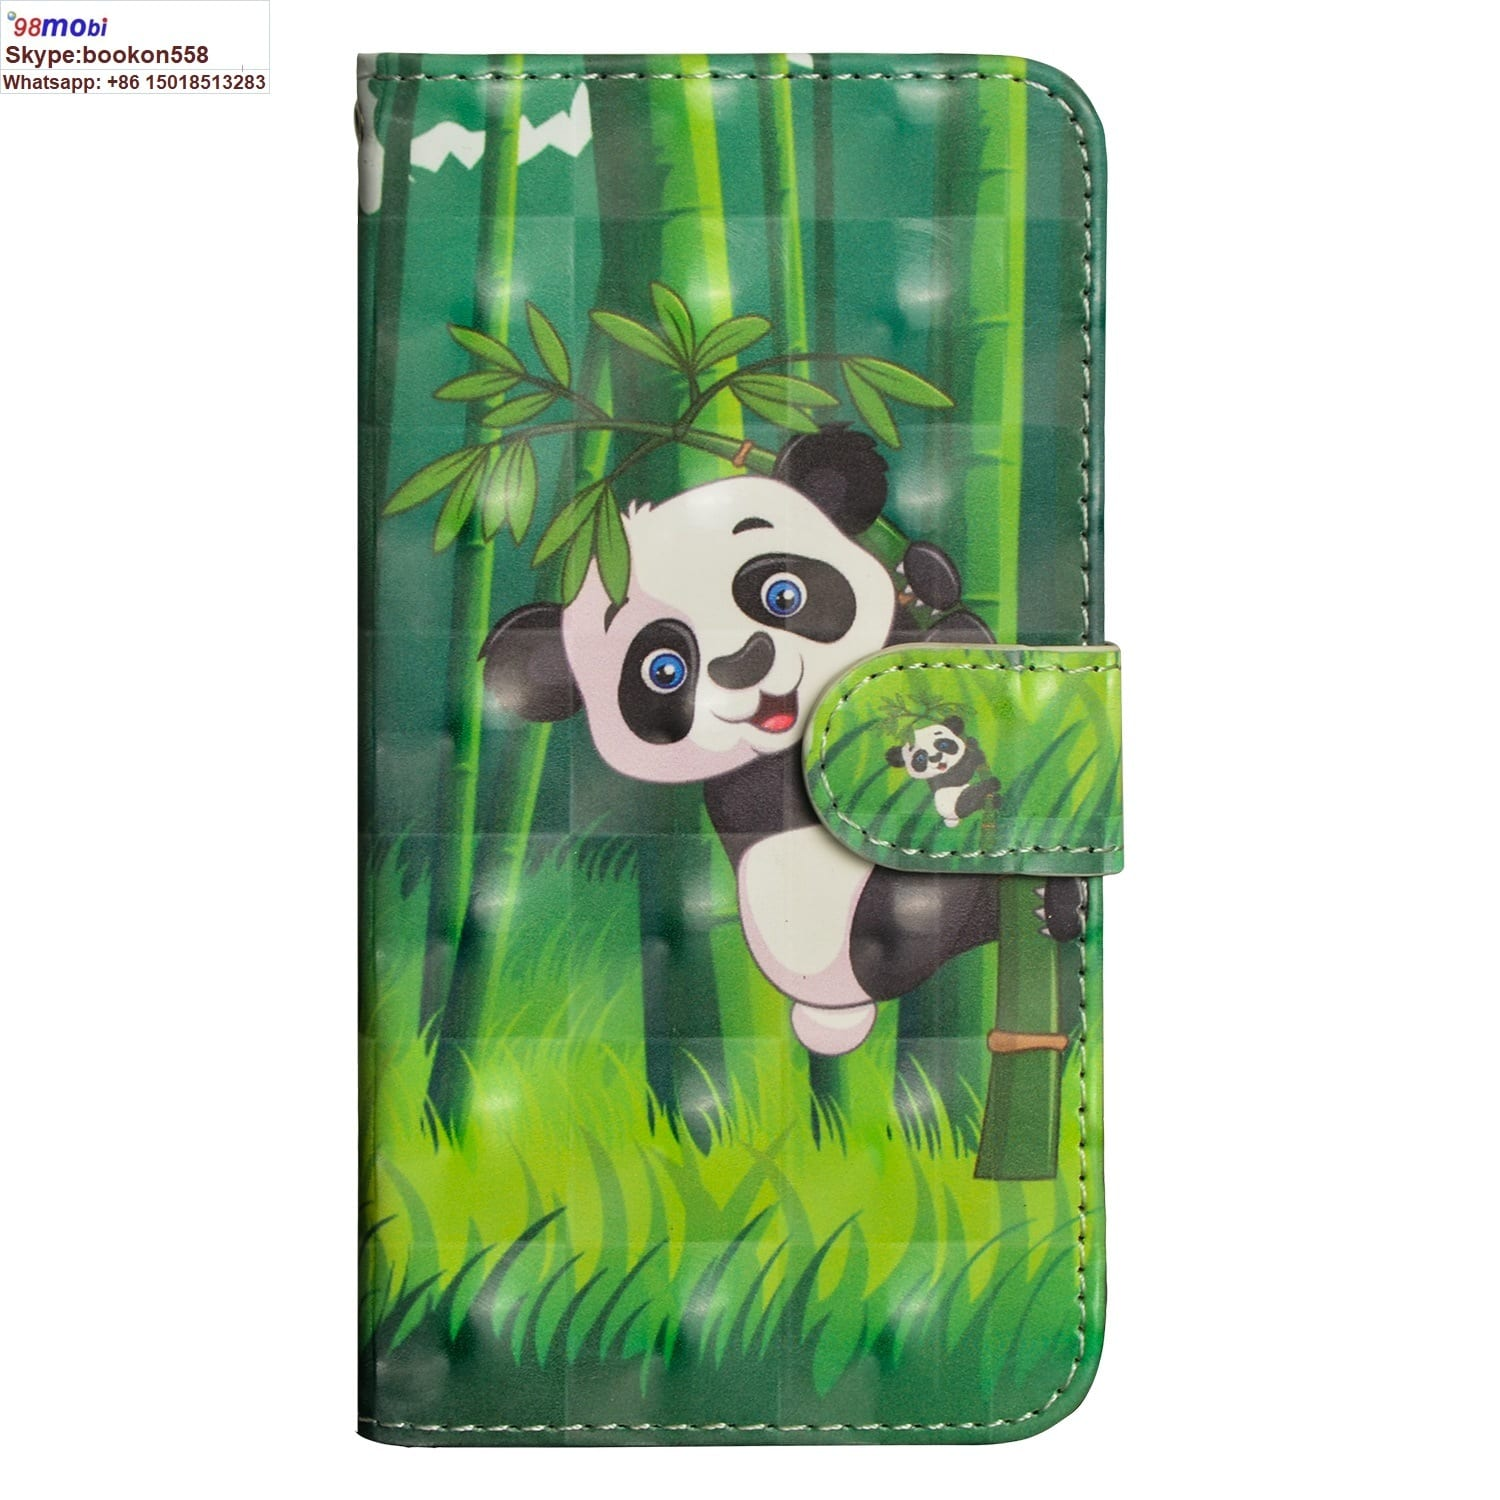 3D Painting Card Smart Phone Case for iPhone, Samsung, Huawei